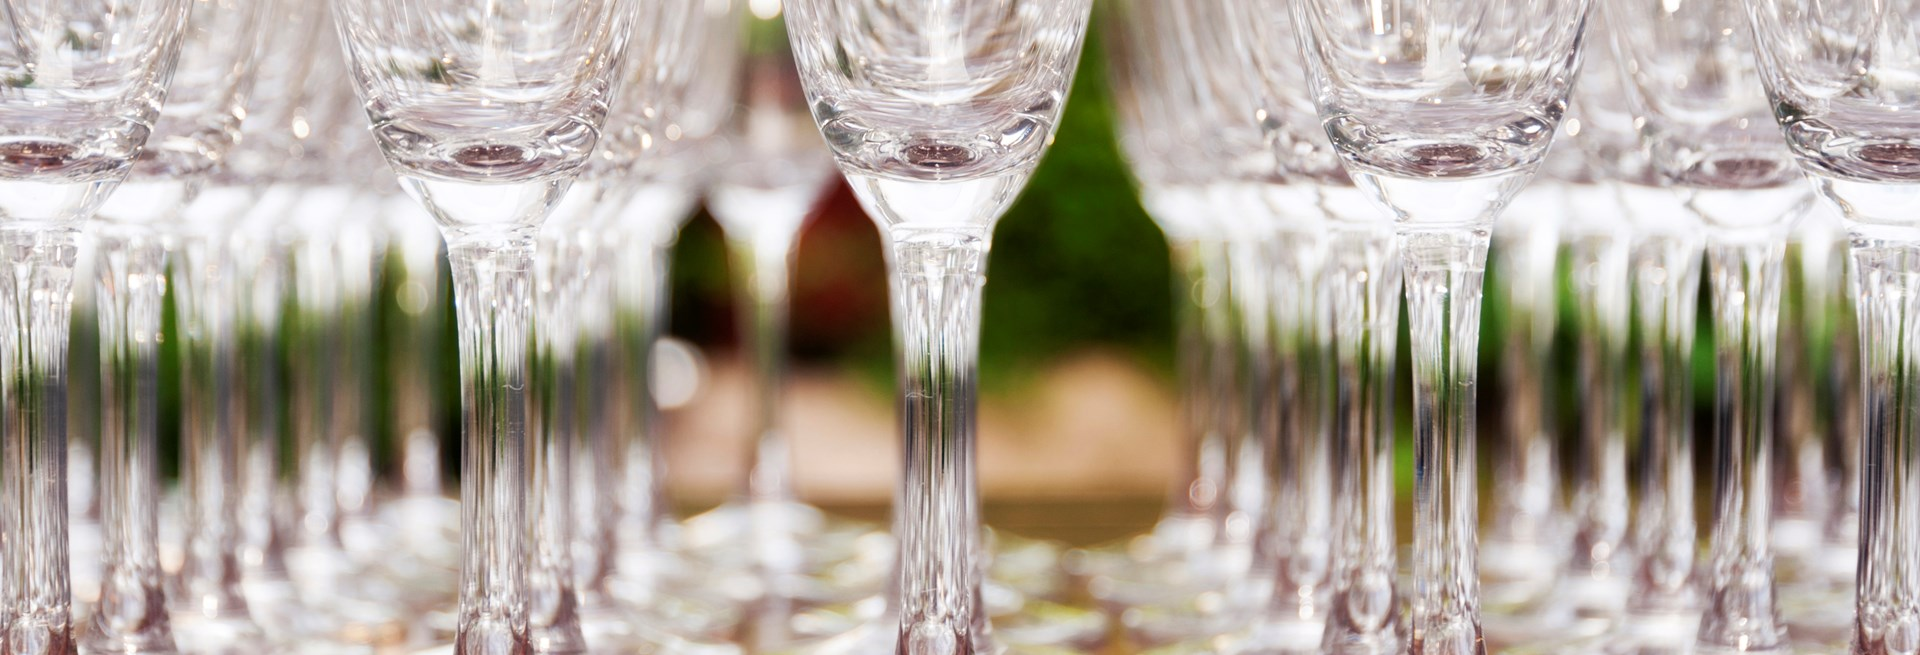 9338128-champagne-glasses.jpg